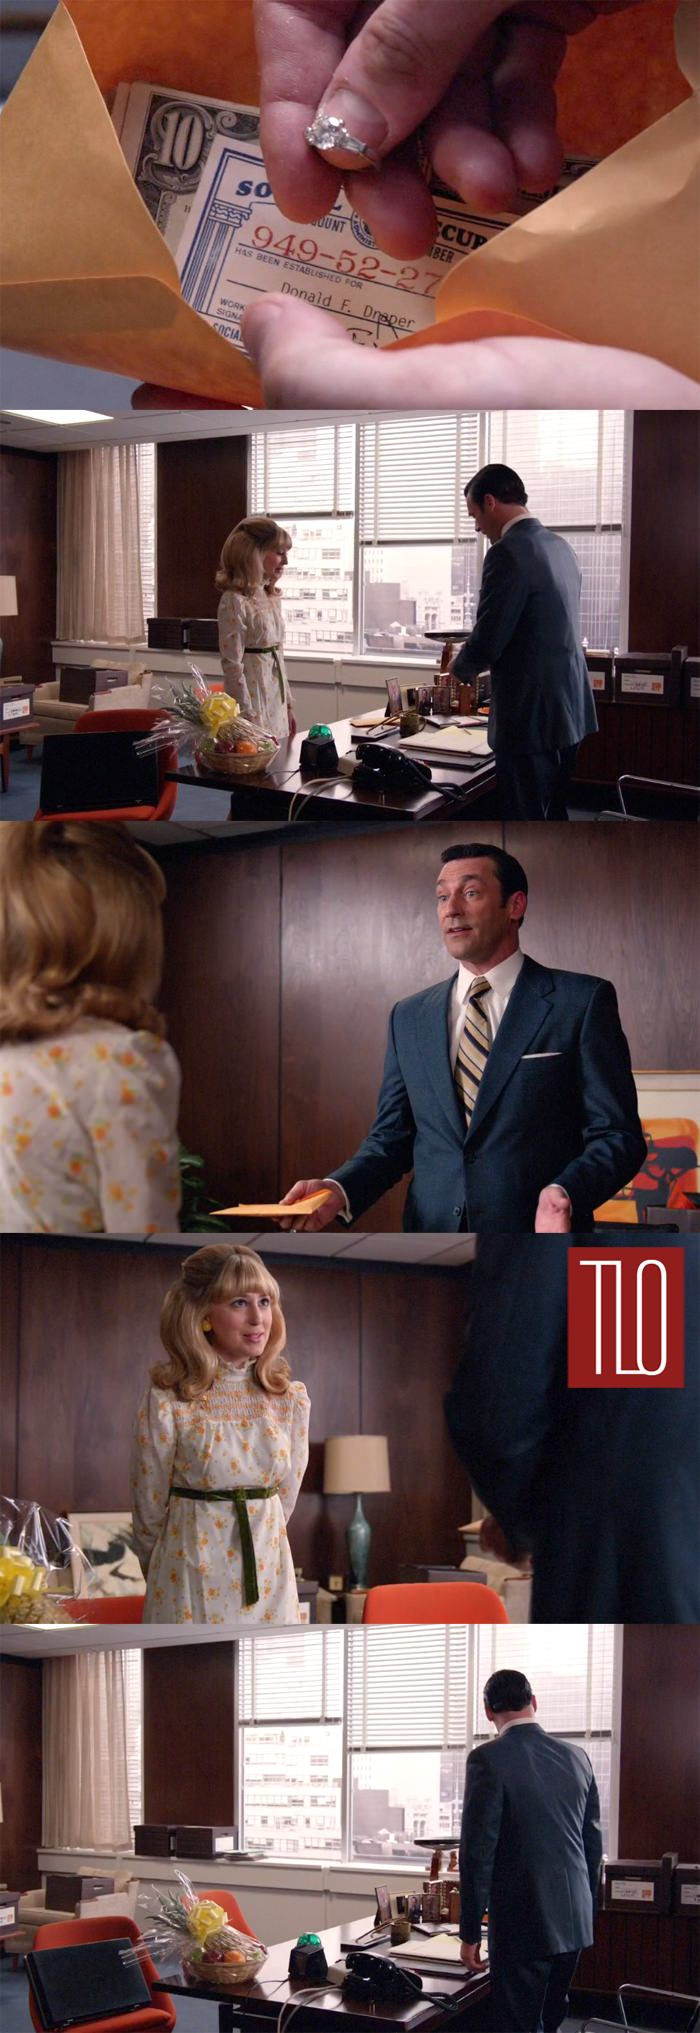 Mad-Men-Season-7-Episode-12-Mad-Style-Costumes-Tom-Lorenzo-Site-TLO (3)